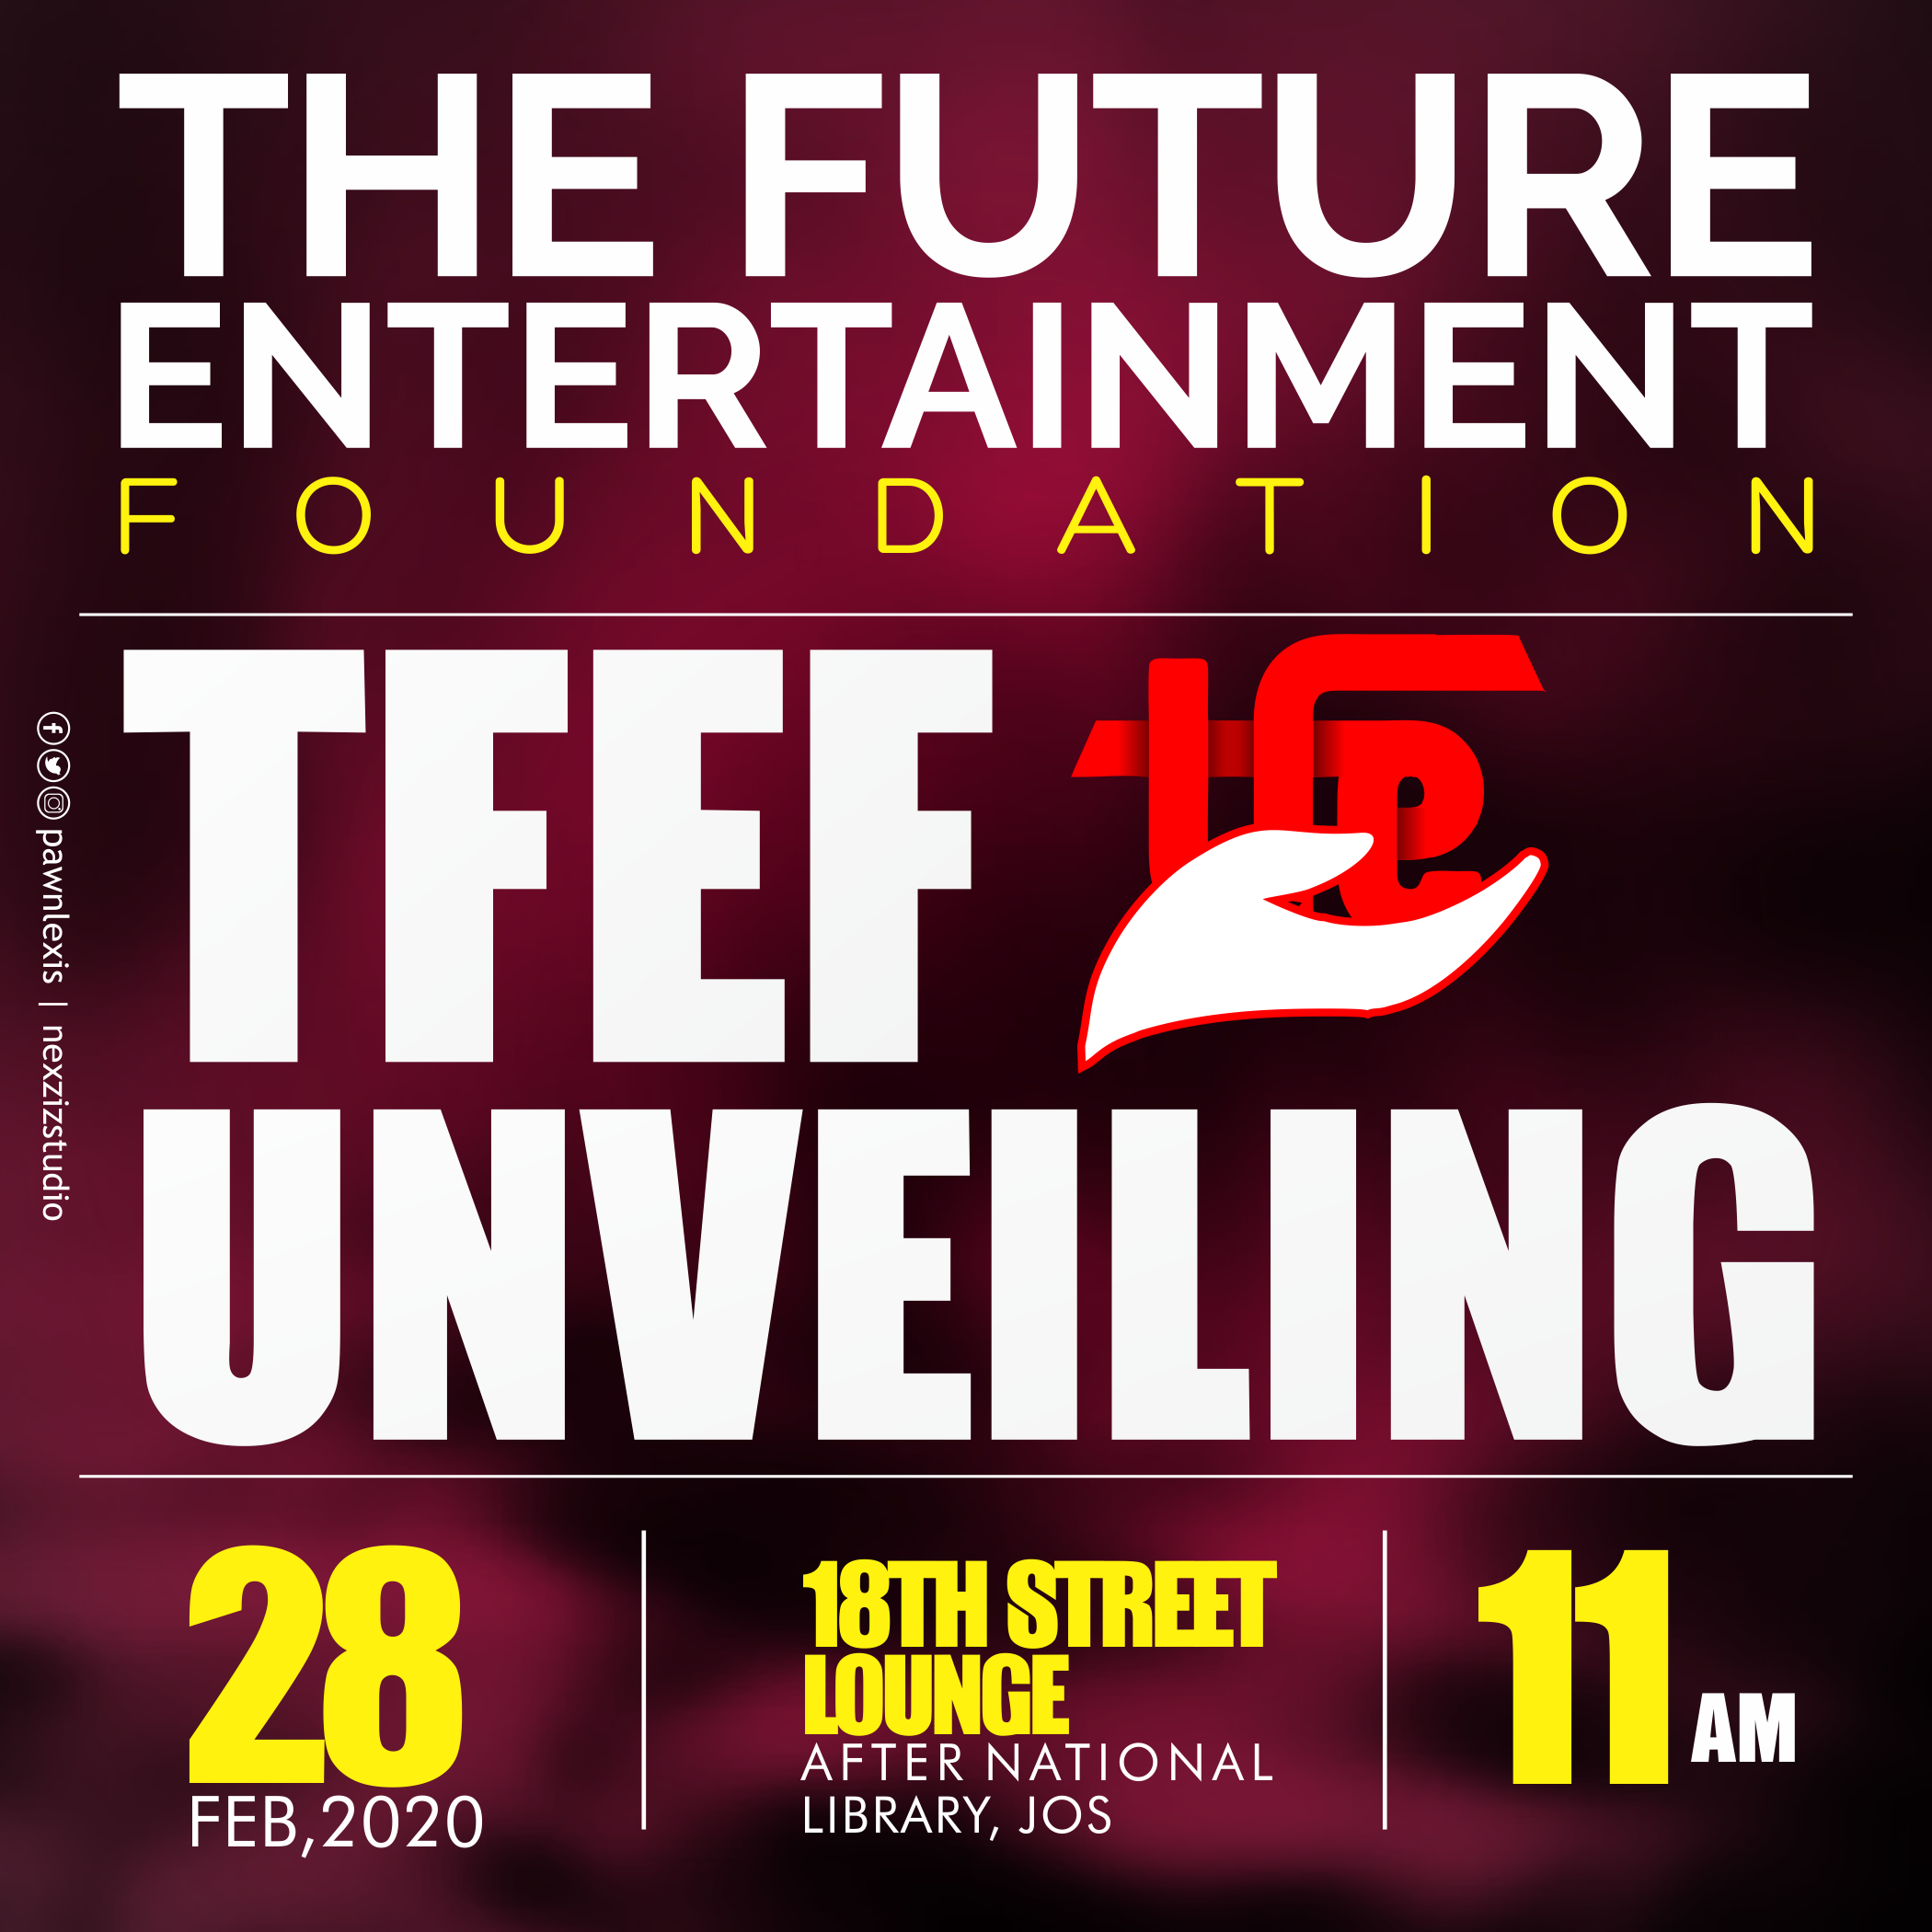 The future entertainment foundation is unveiling